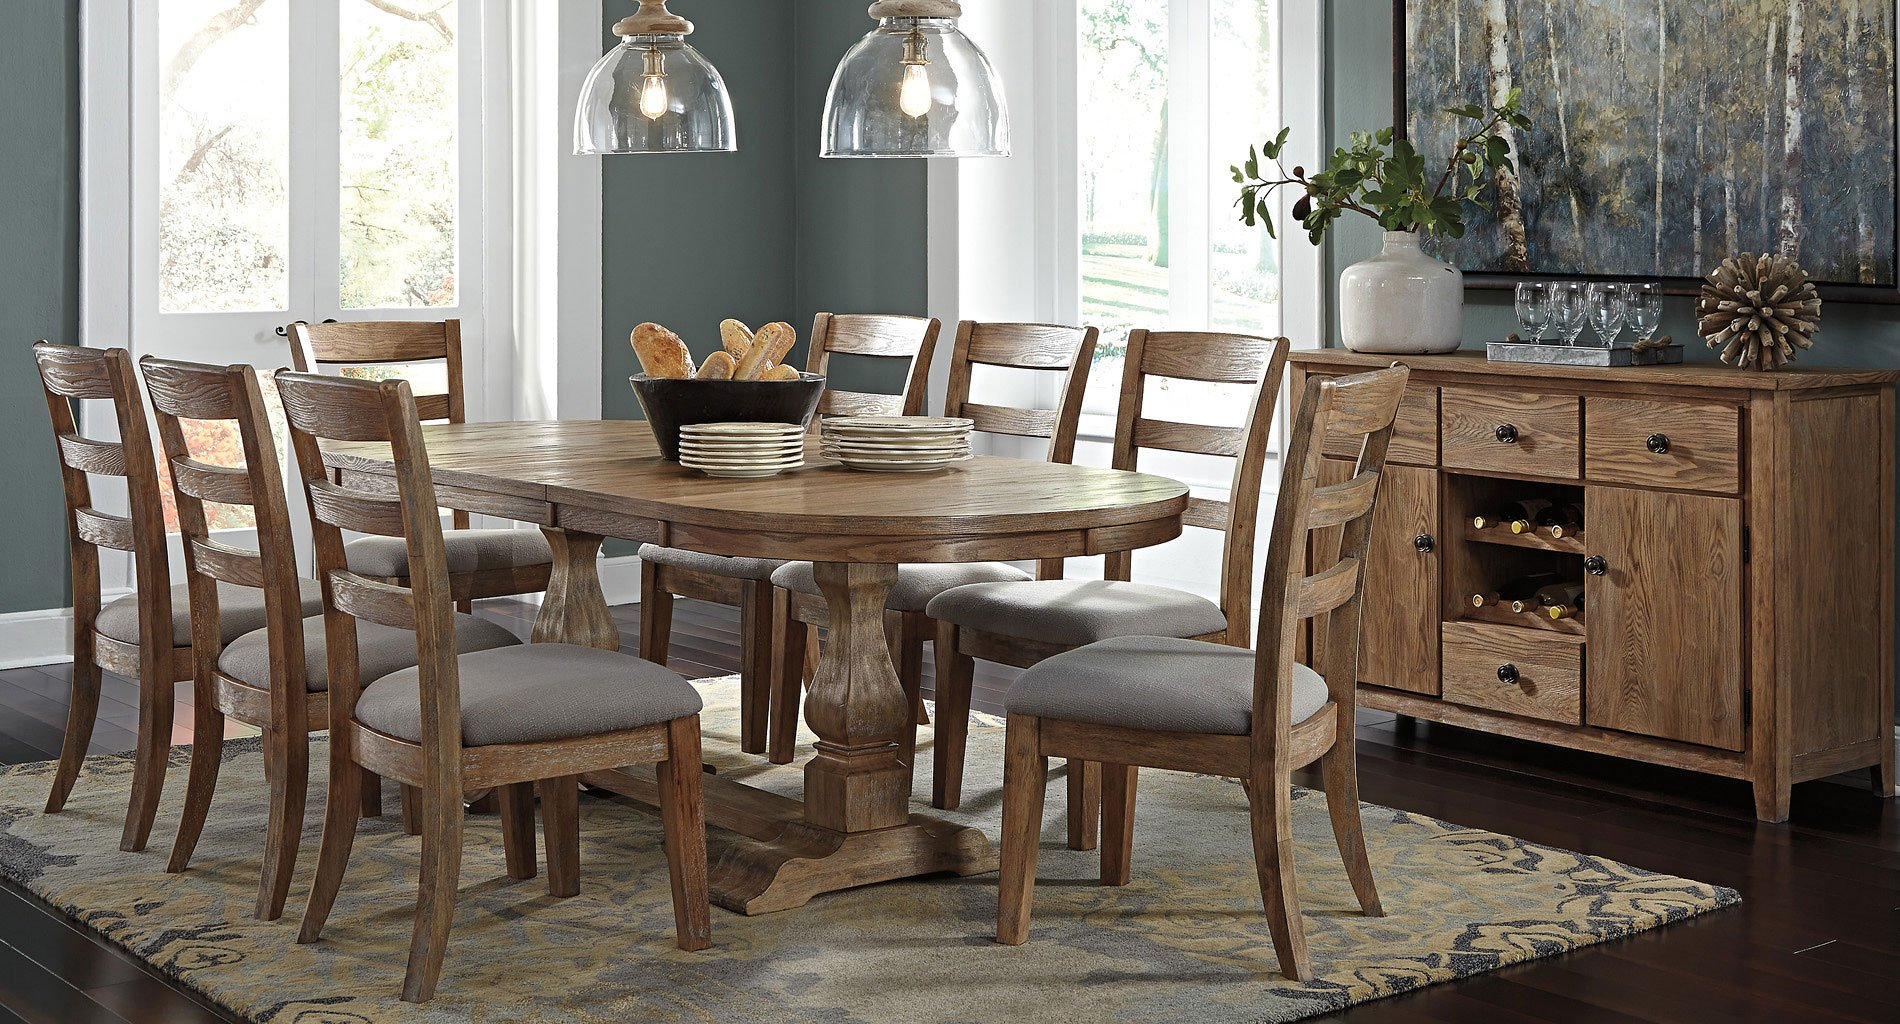 Danimore Oval Dining Room Set